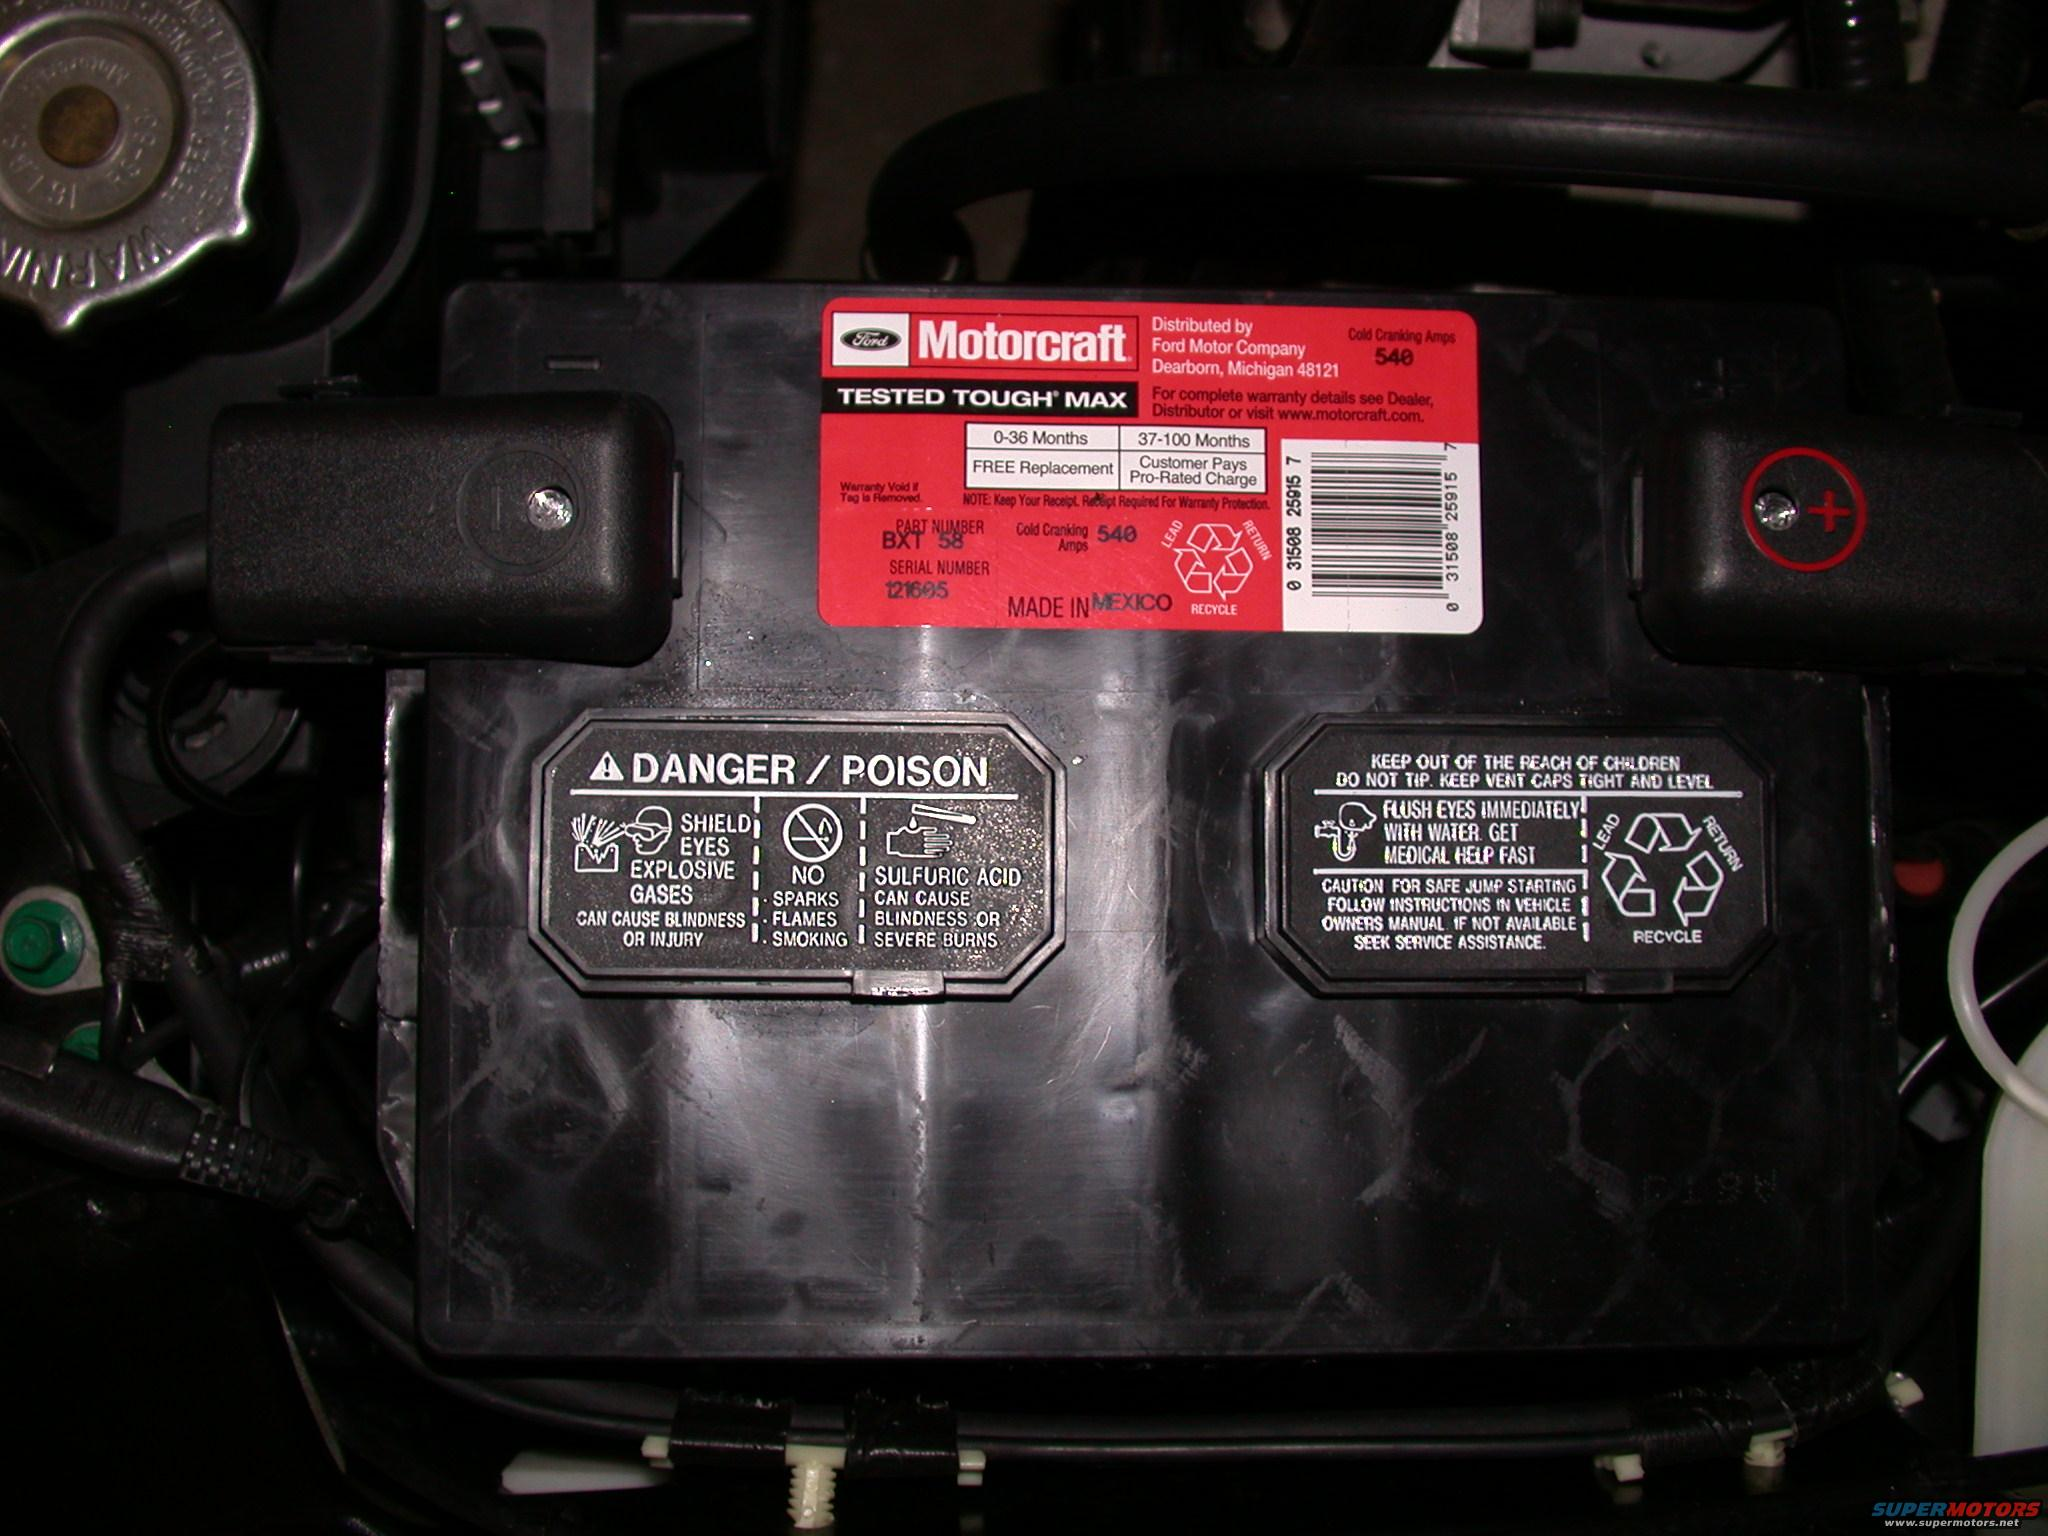 Period Specific Motorcraft Battery Decals